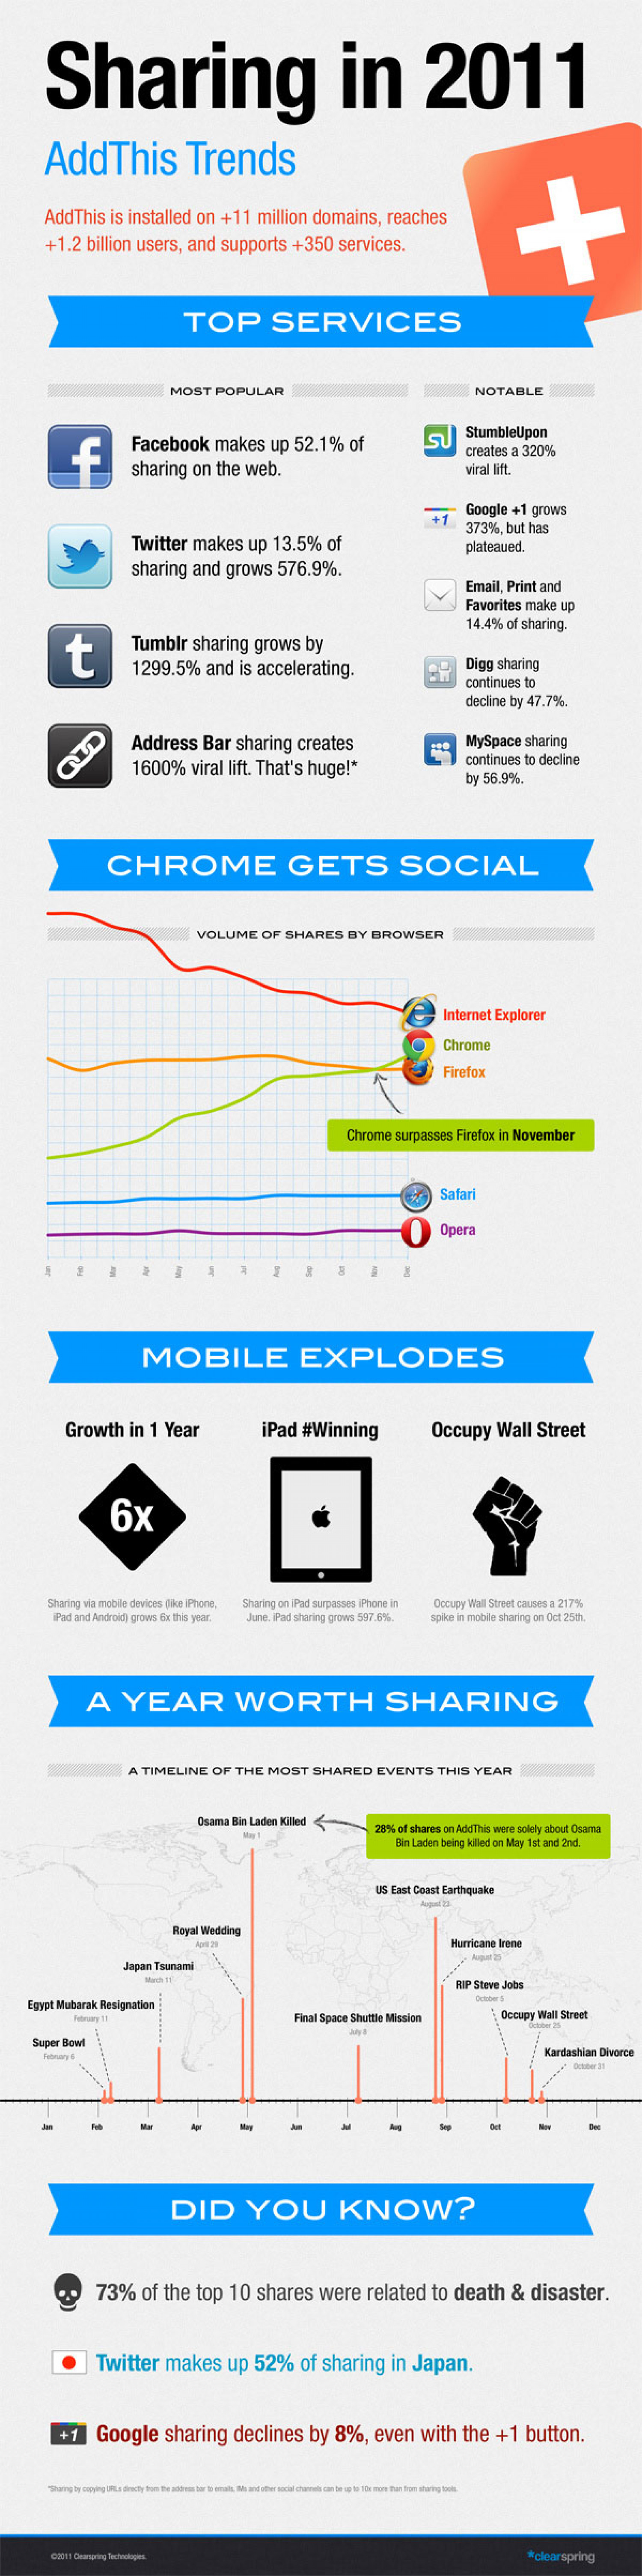 Sharing Trends in 2011 Infographic